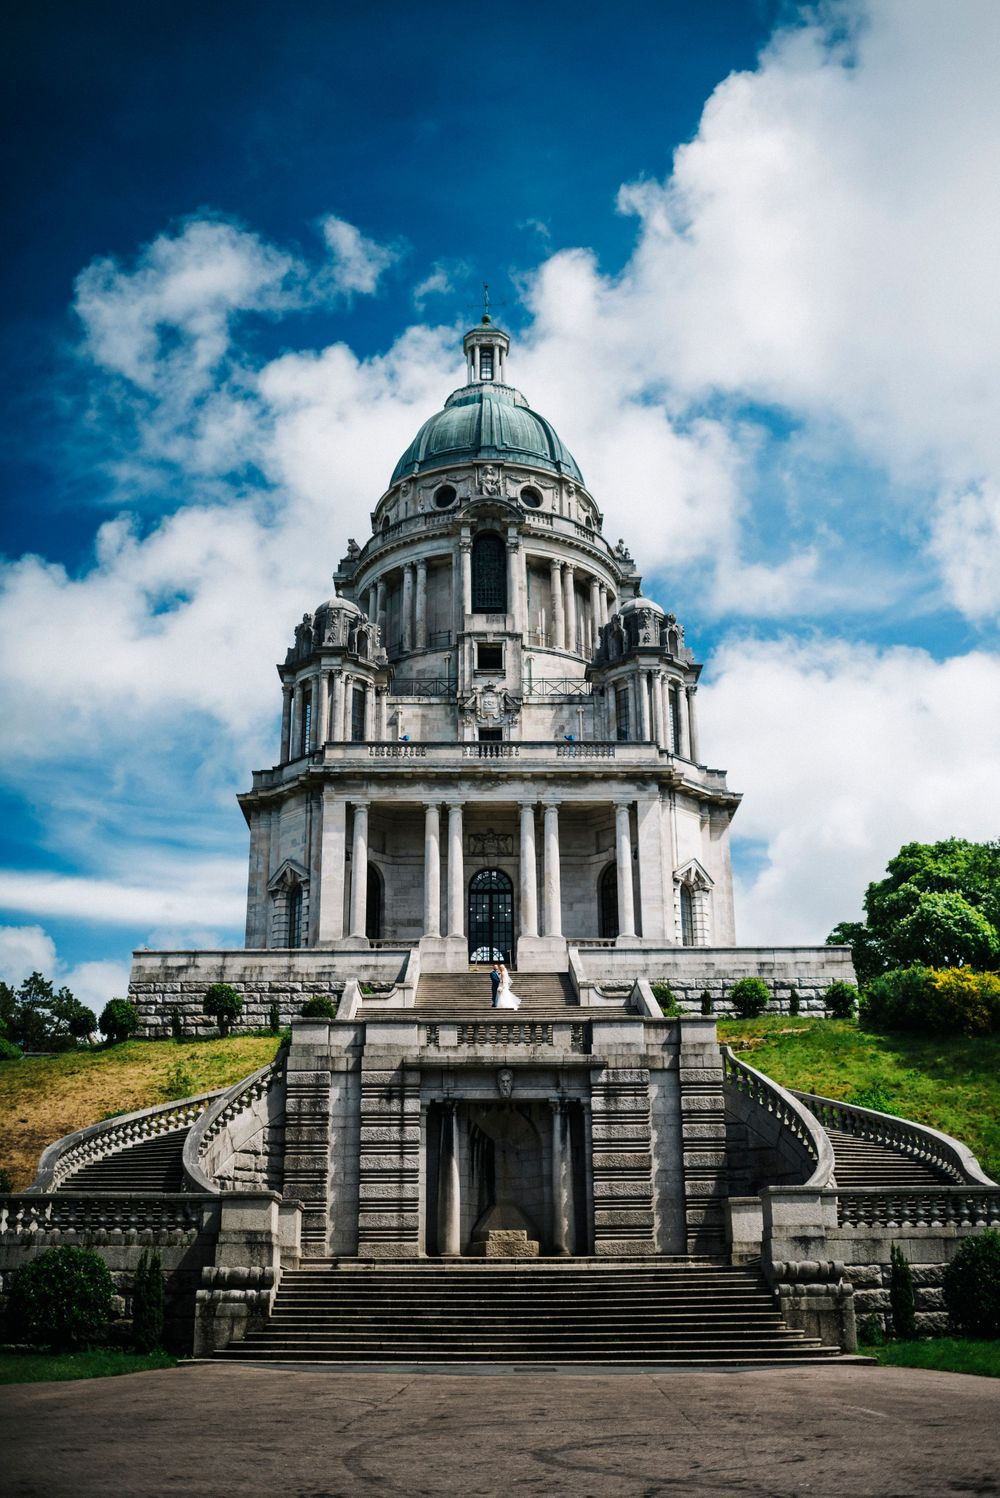 Ashton Memorial wedding, Lancaster wedding, Lancashire wedding photographer, Ashton memorial wedding photographer